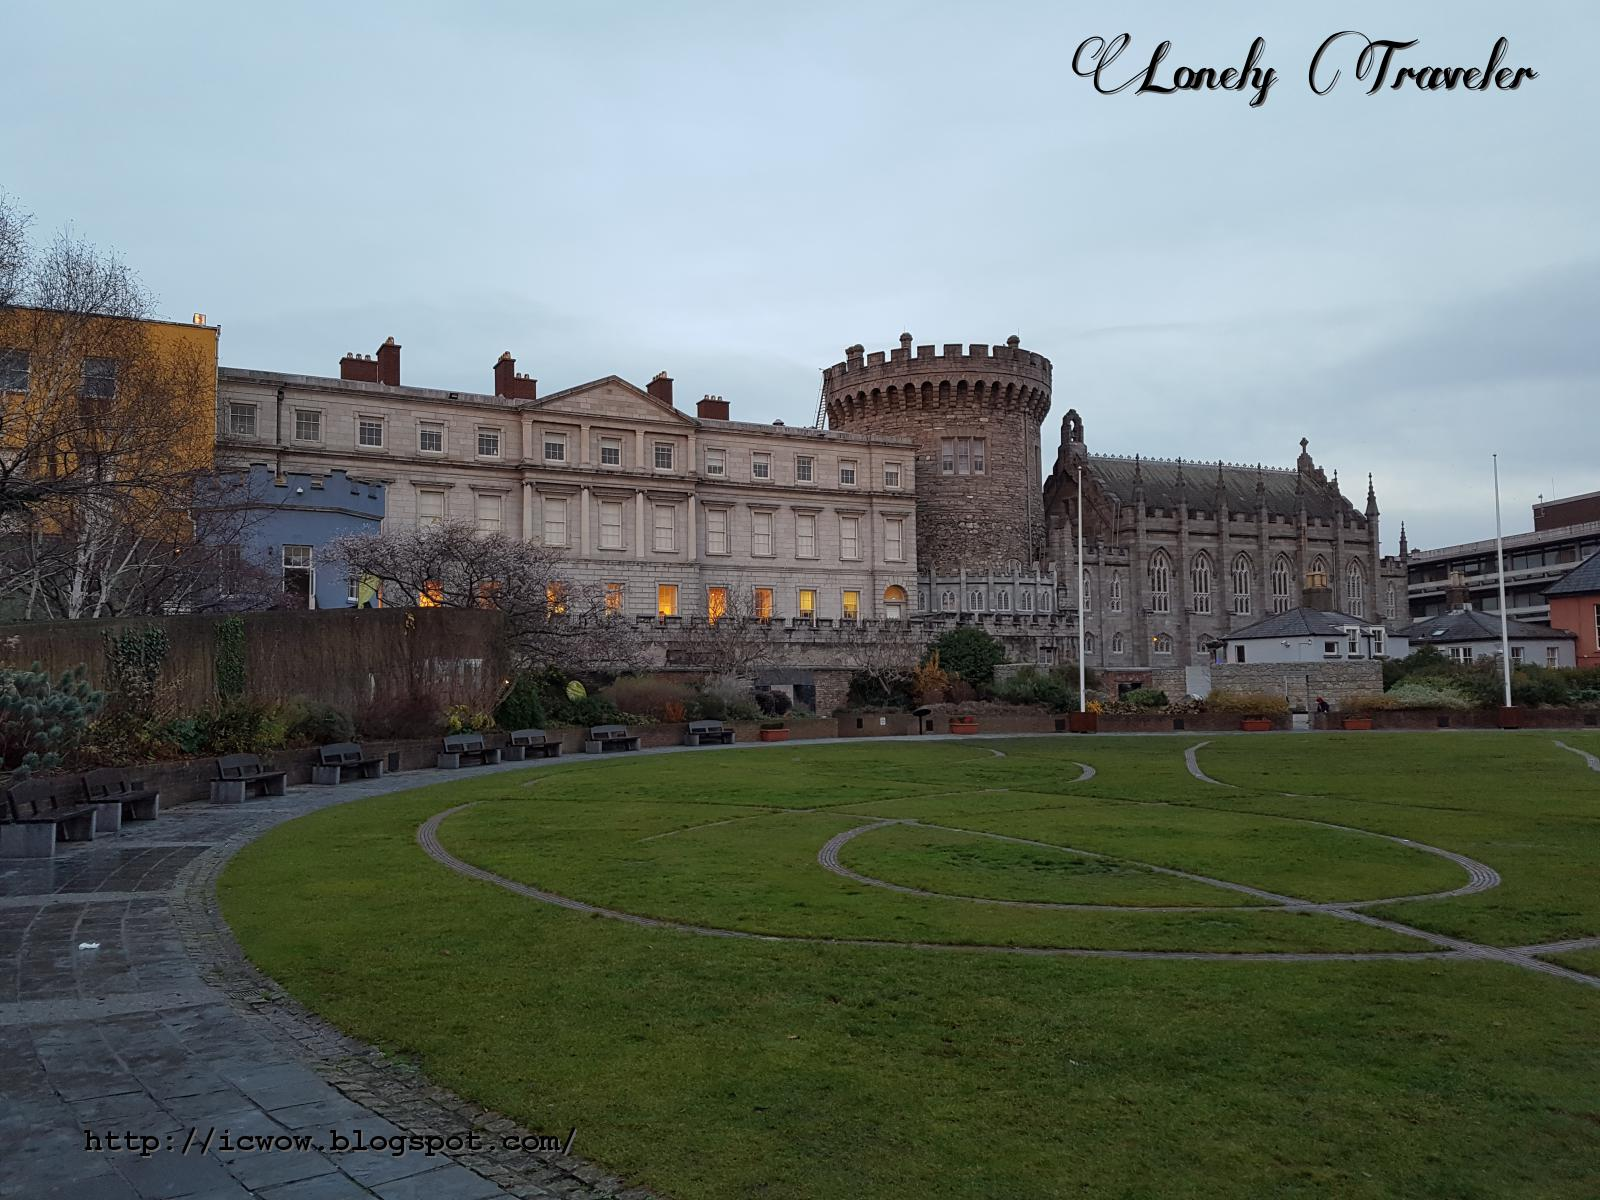 dublin castle at afternoon ireland lonely traveler